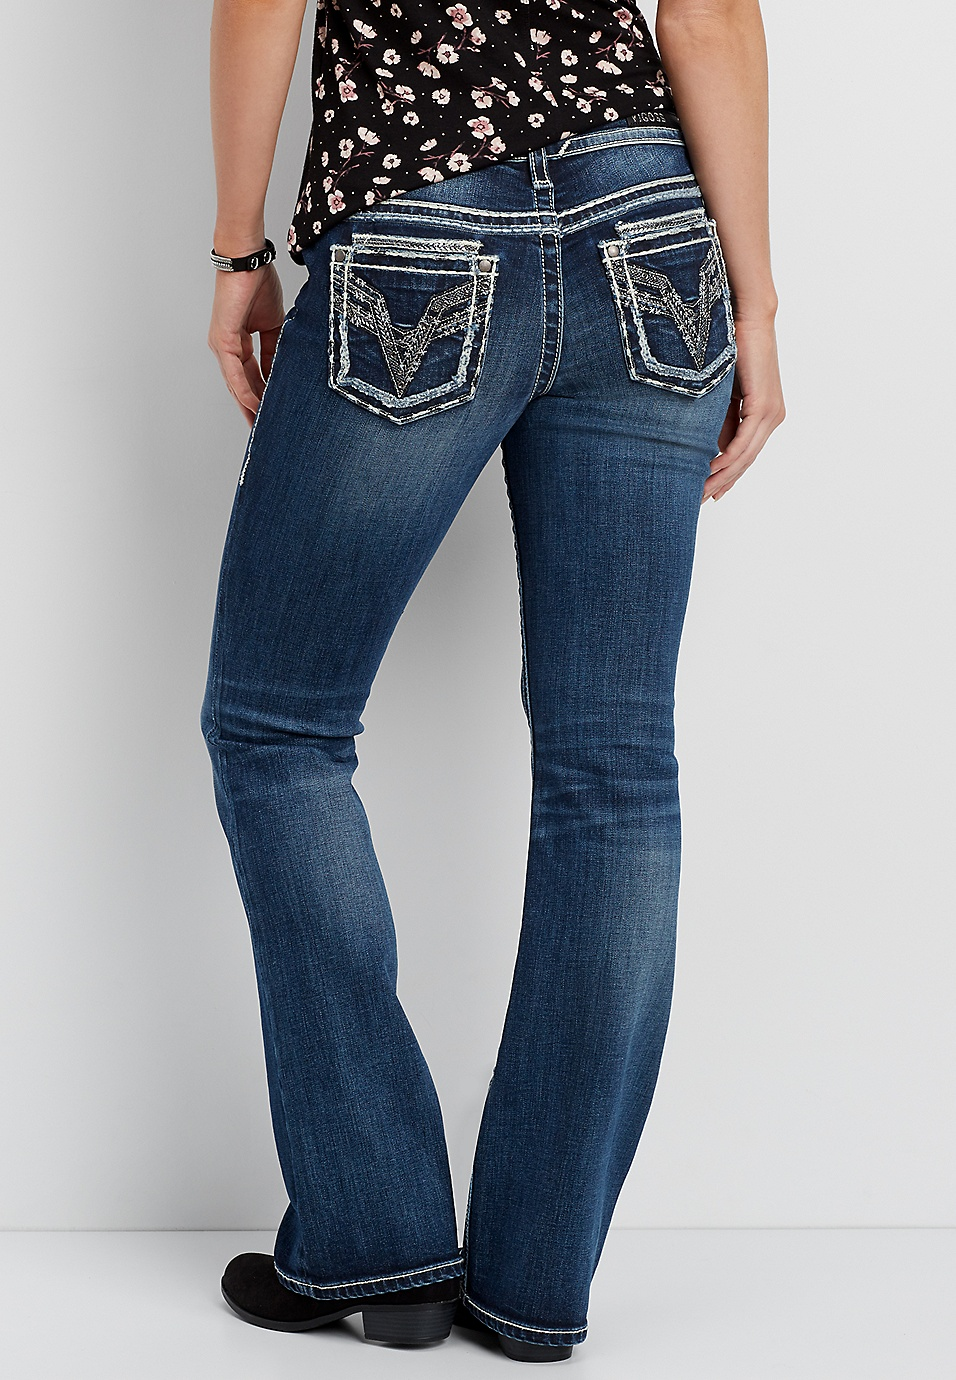 Cheap Low Cost Vigoss Medium Wash Bootcut Jeans With Rhinestones And Frayed Hem Maurices Outlet With Paypal Order Wholesale Quality Low Cost Cheap Price GZiLnA